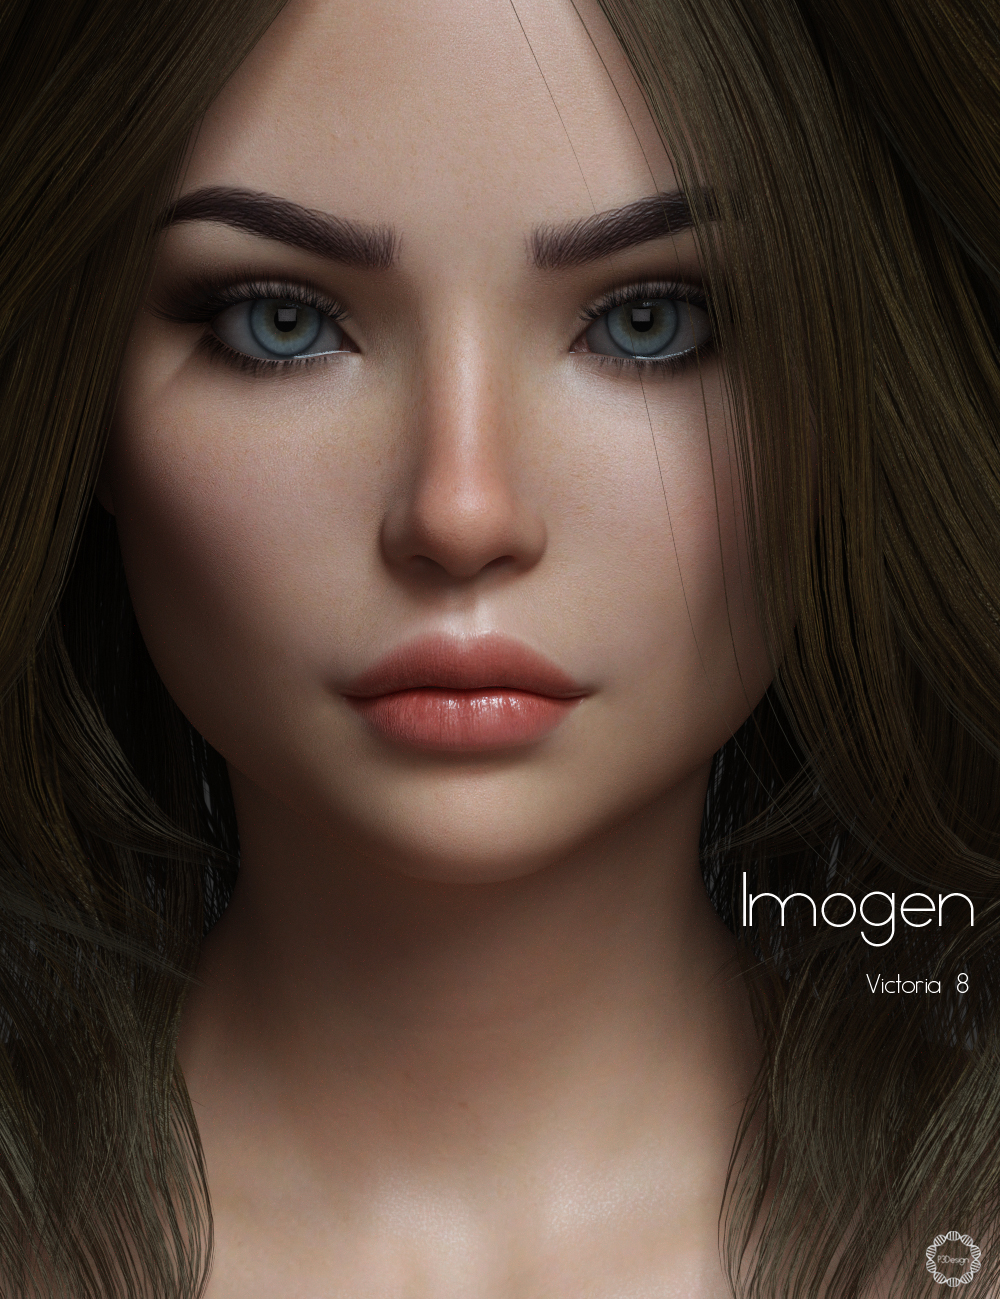 P3D Imogen for Victoria 8